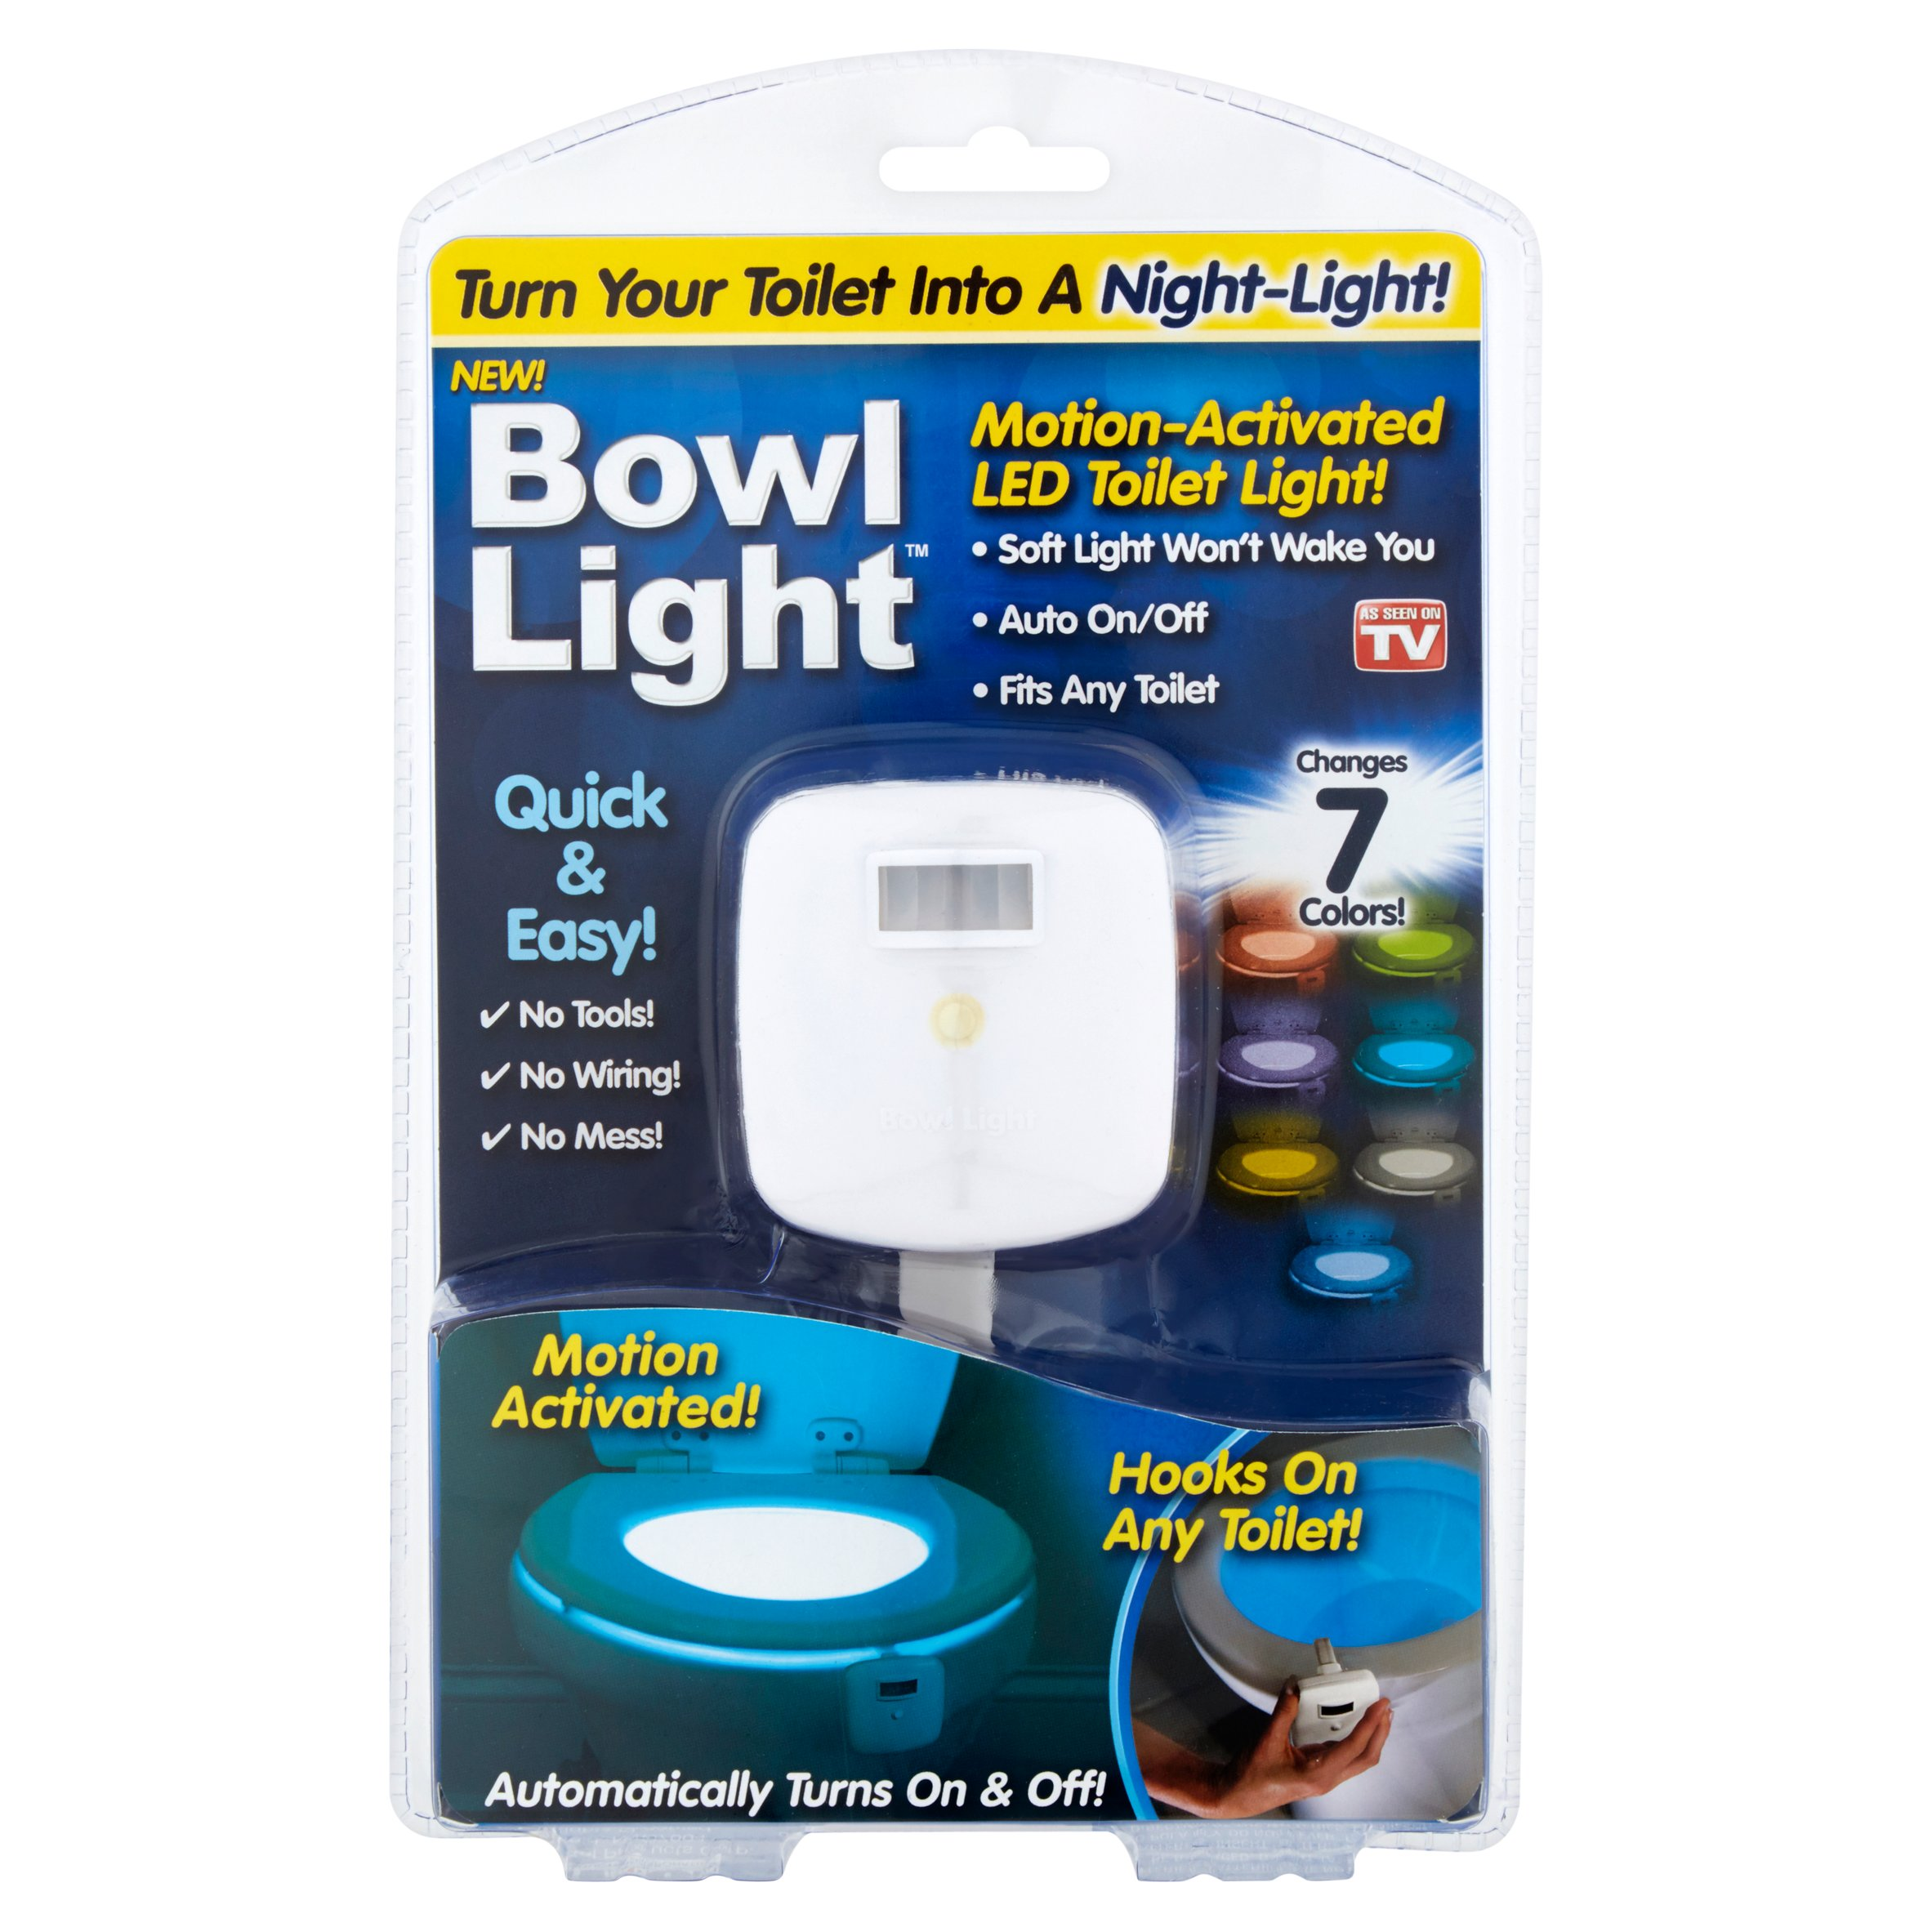 Bowl Light Motion-Activated LED Toilet Light